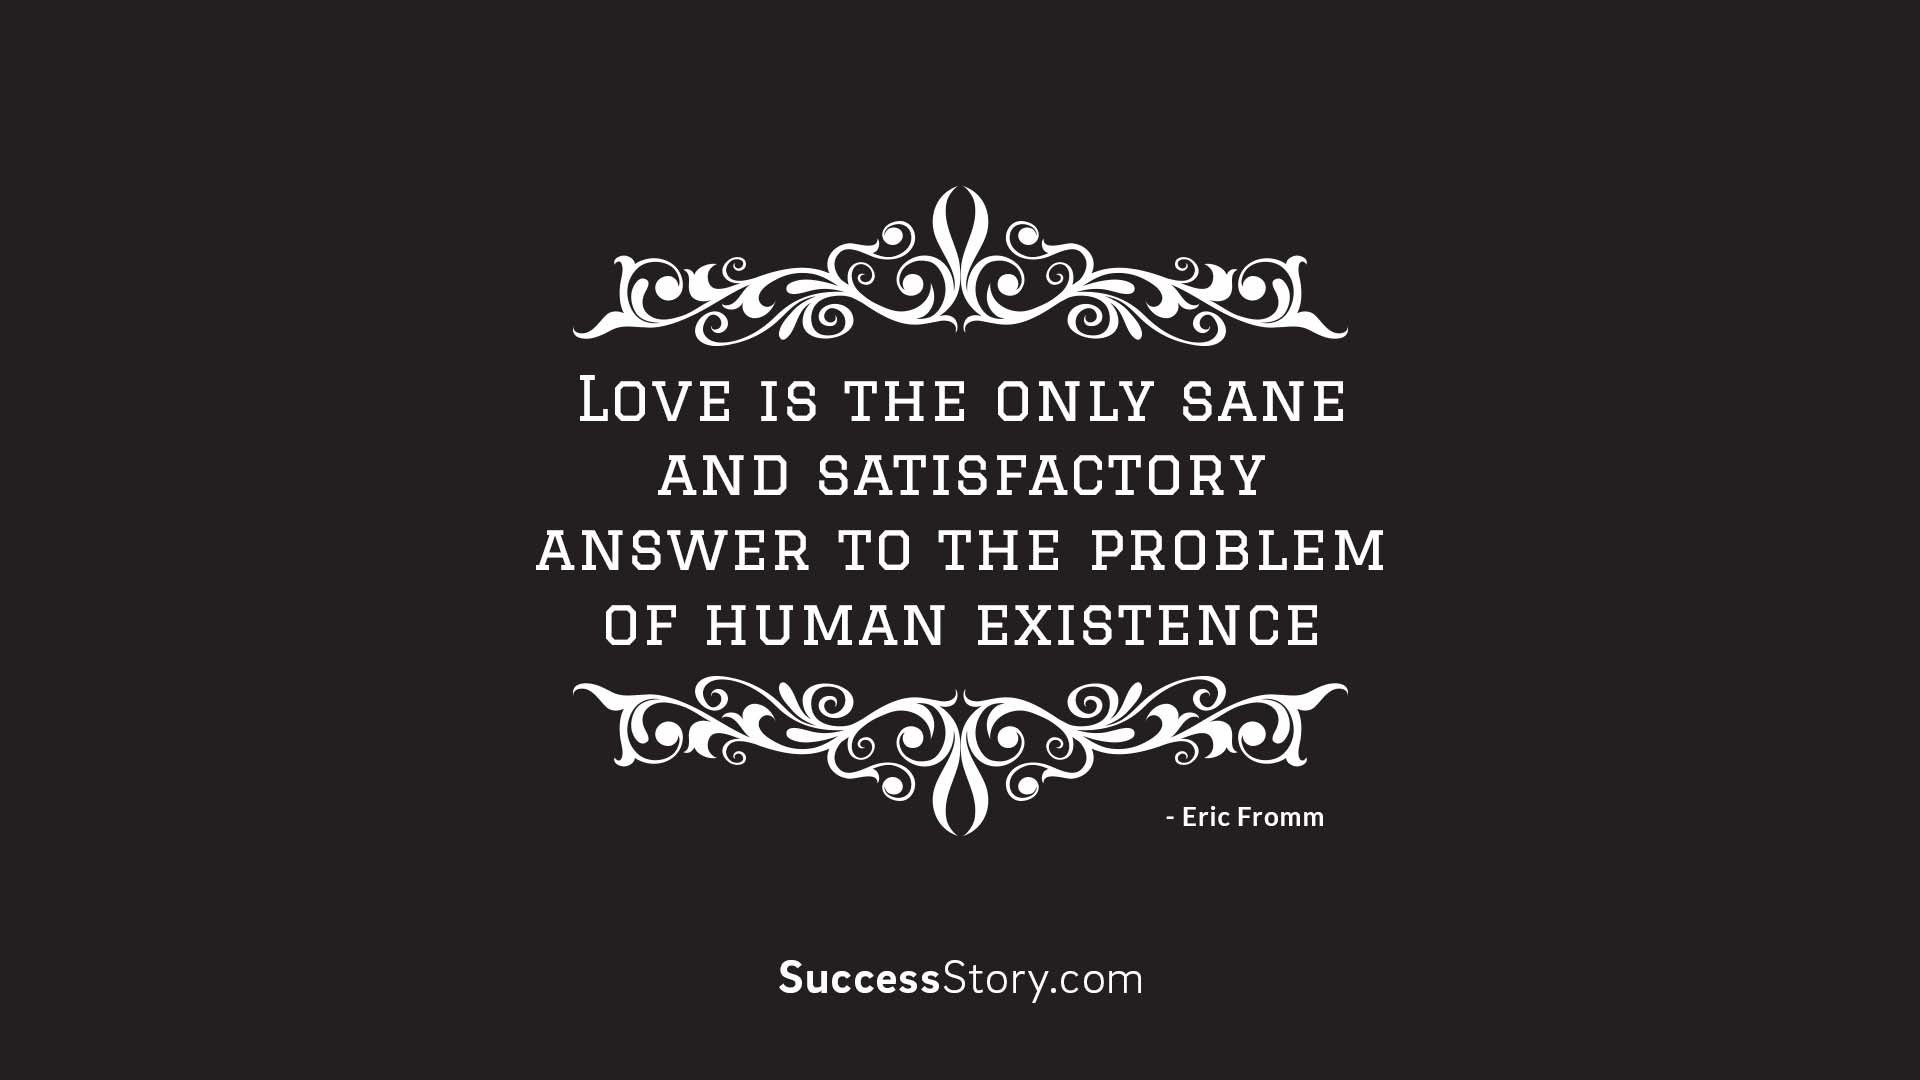 Love is the only sane and